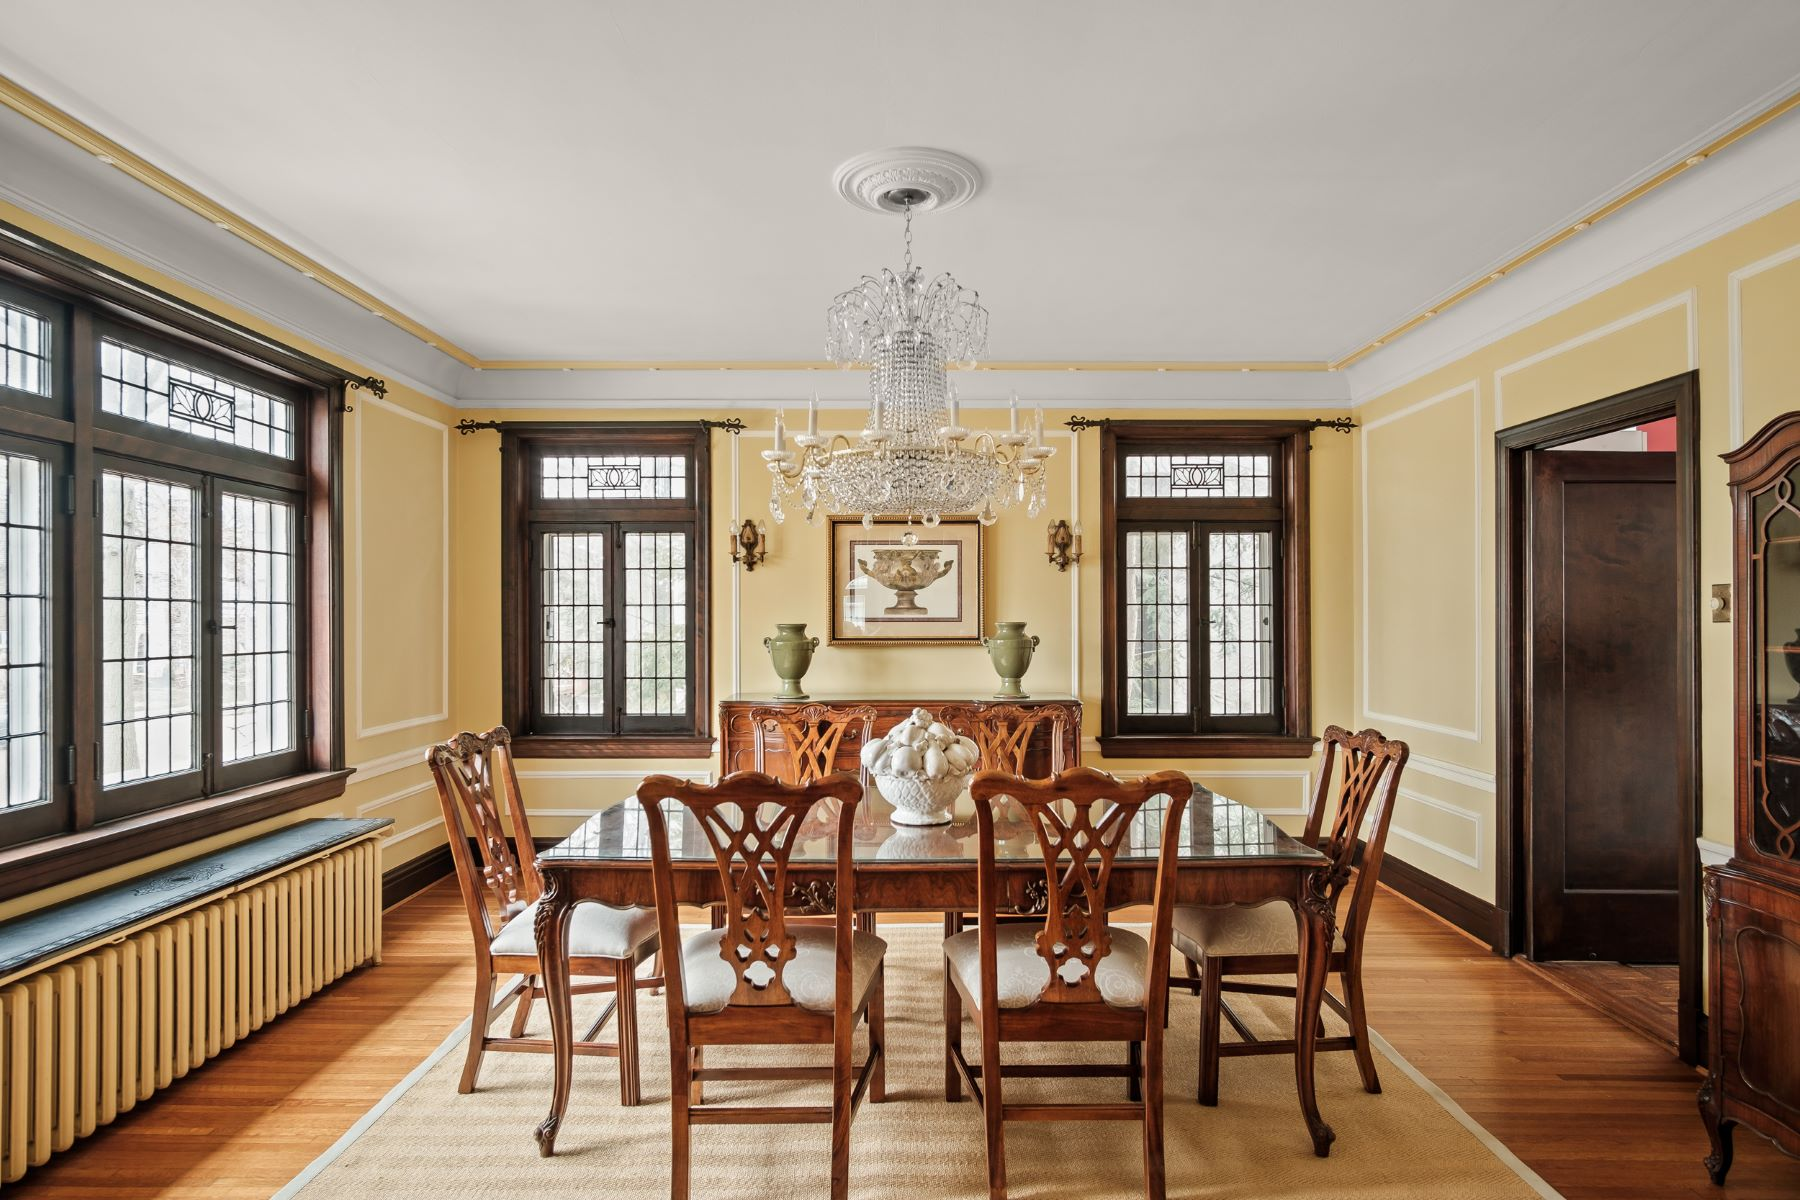 Additional photo for property listing at Coveted University Hills Home with Gorgeous Architecture 7281 Greenway Avenue University City, Missouri 63130 United States